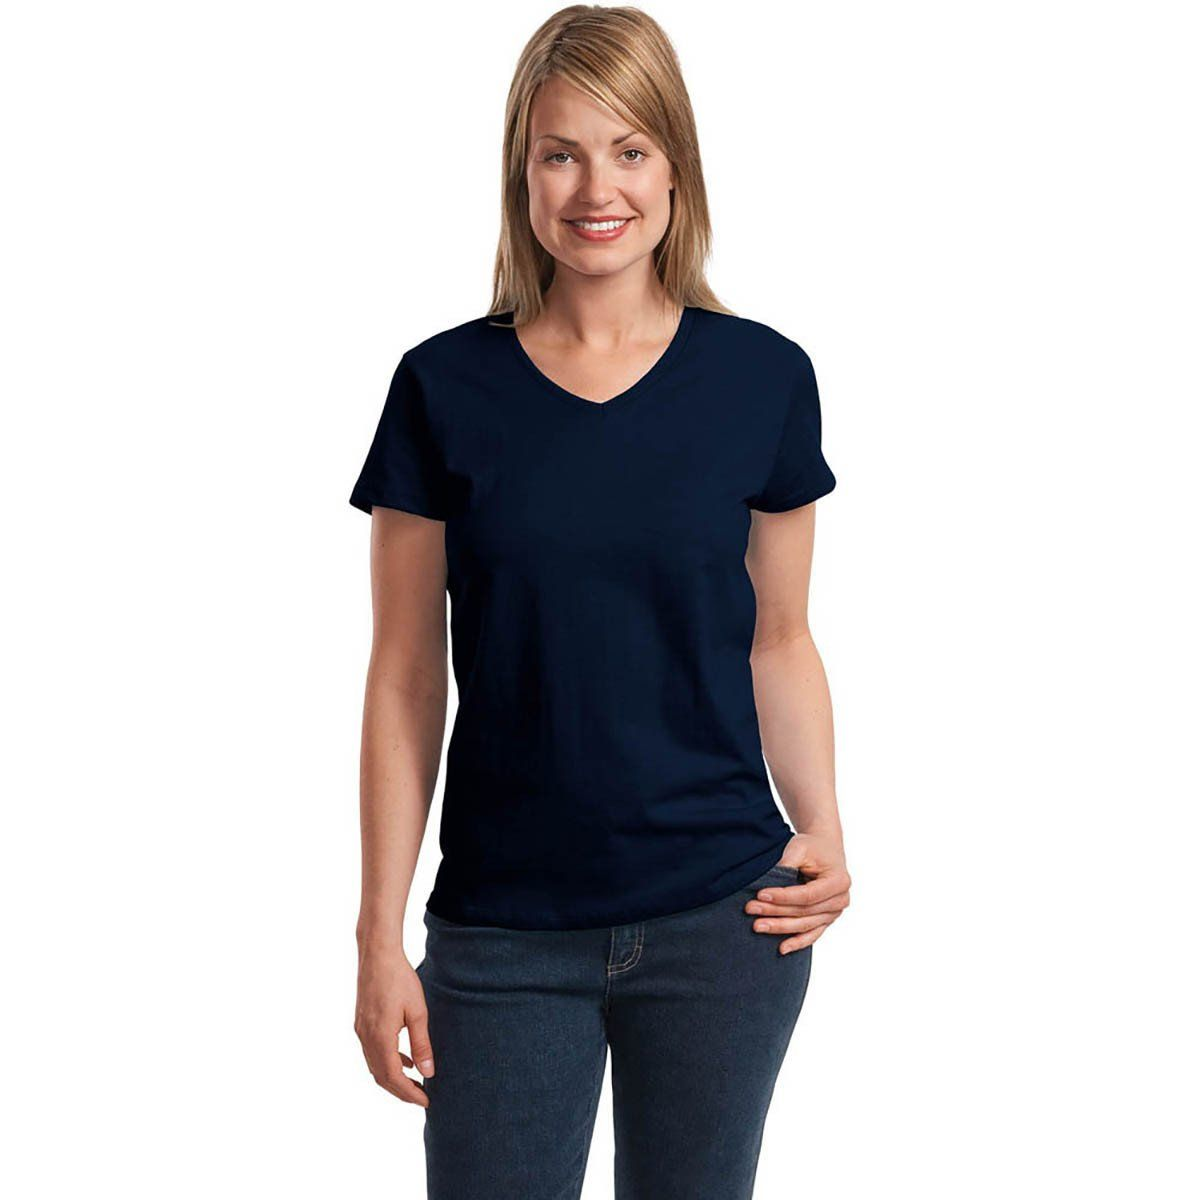 BYD Manty Short Sleeve V-Neck Tee Shirt Women's Tee Shirt Image Navy S